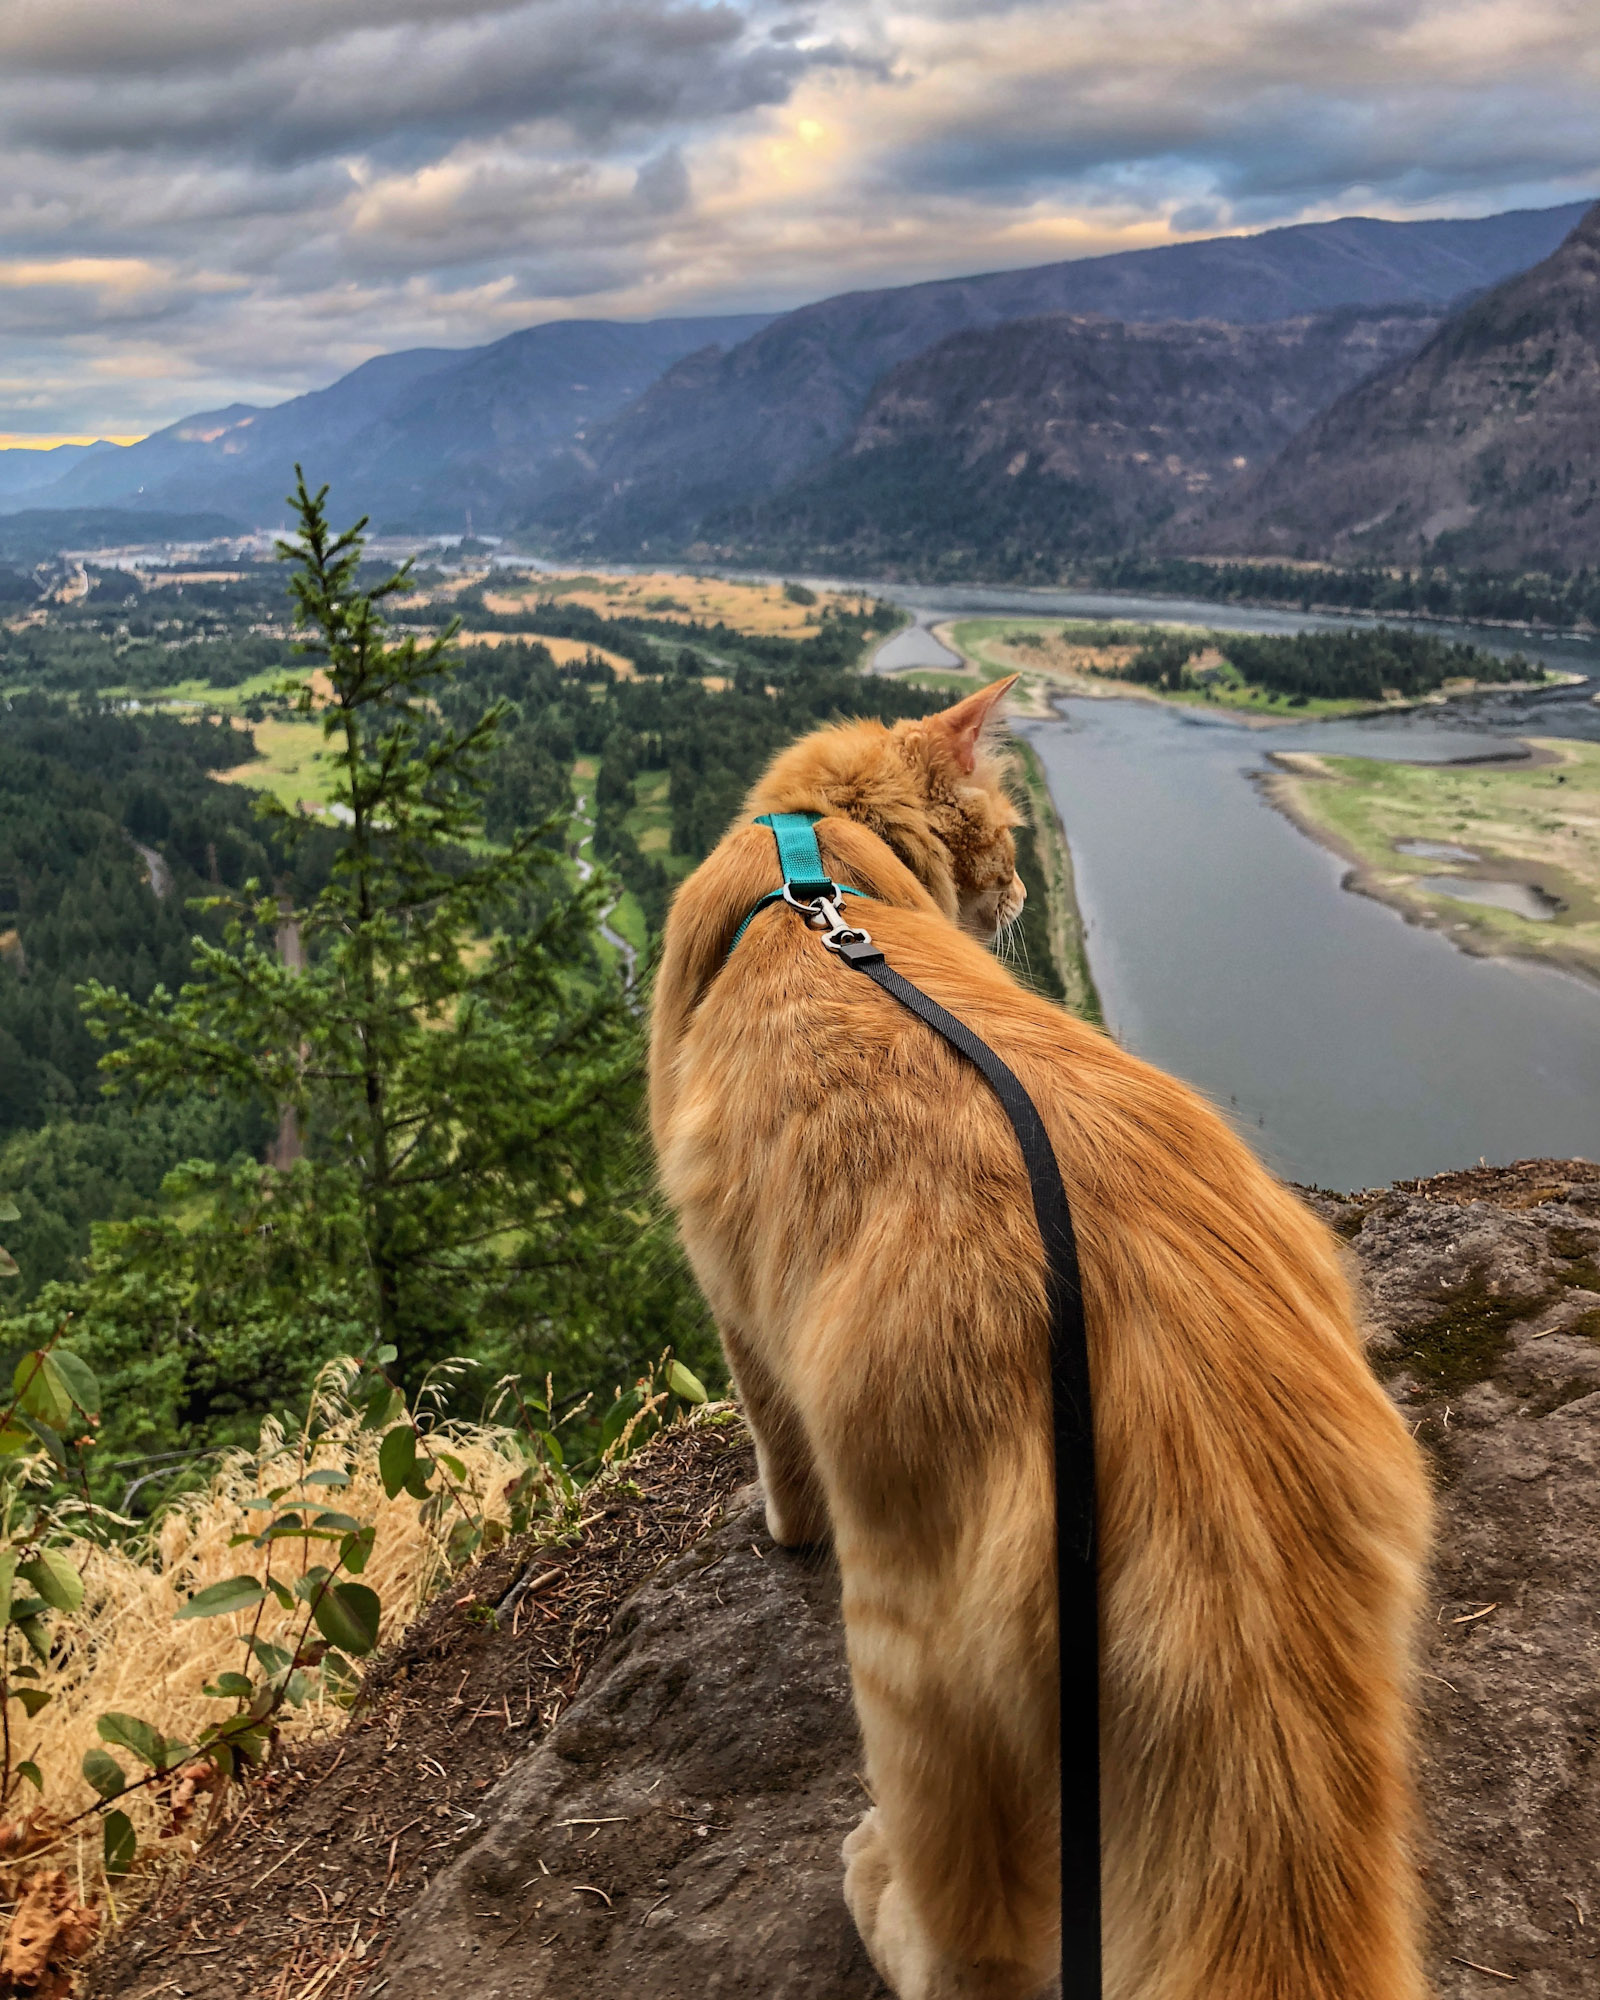 adventure cat overlooks mountain view